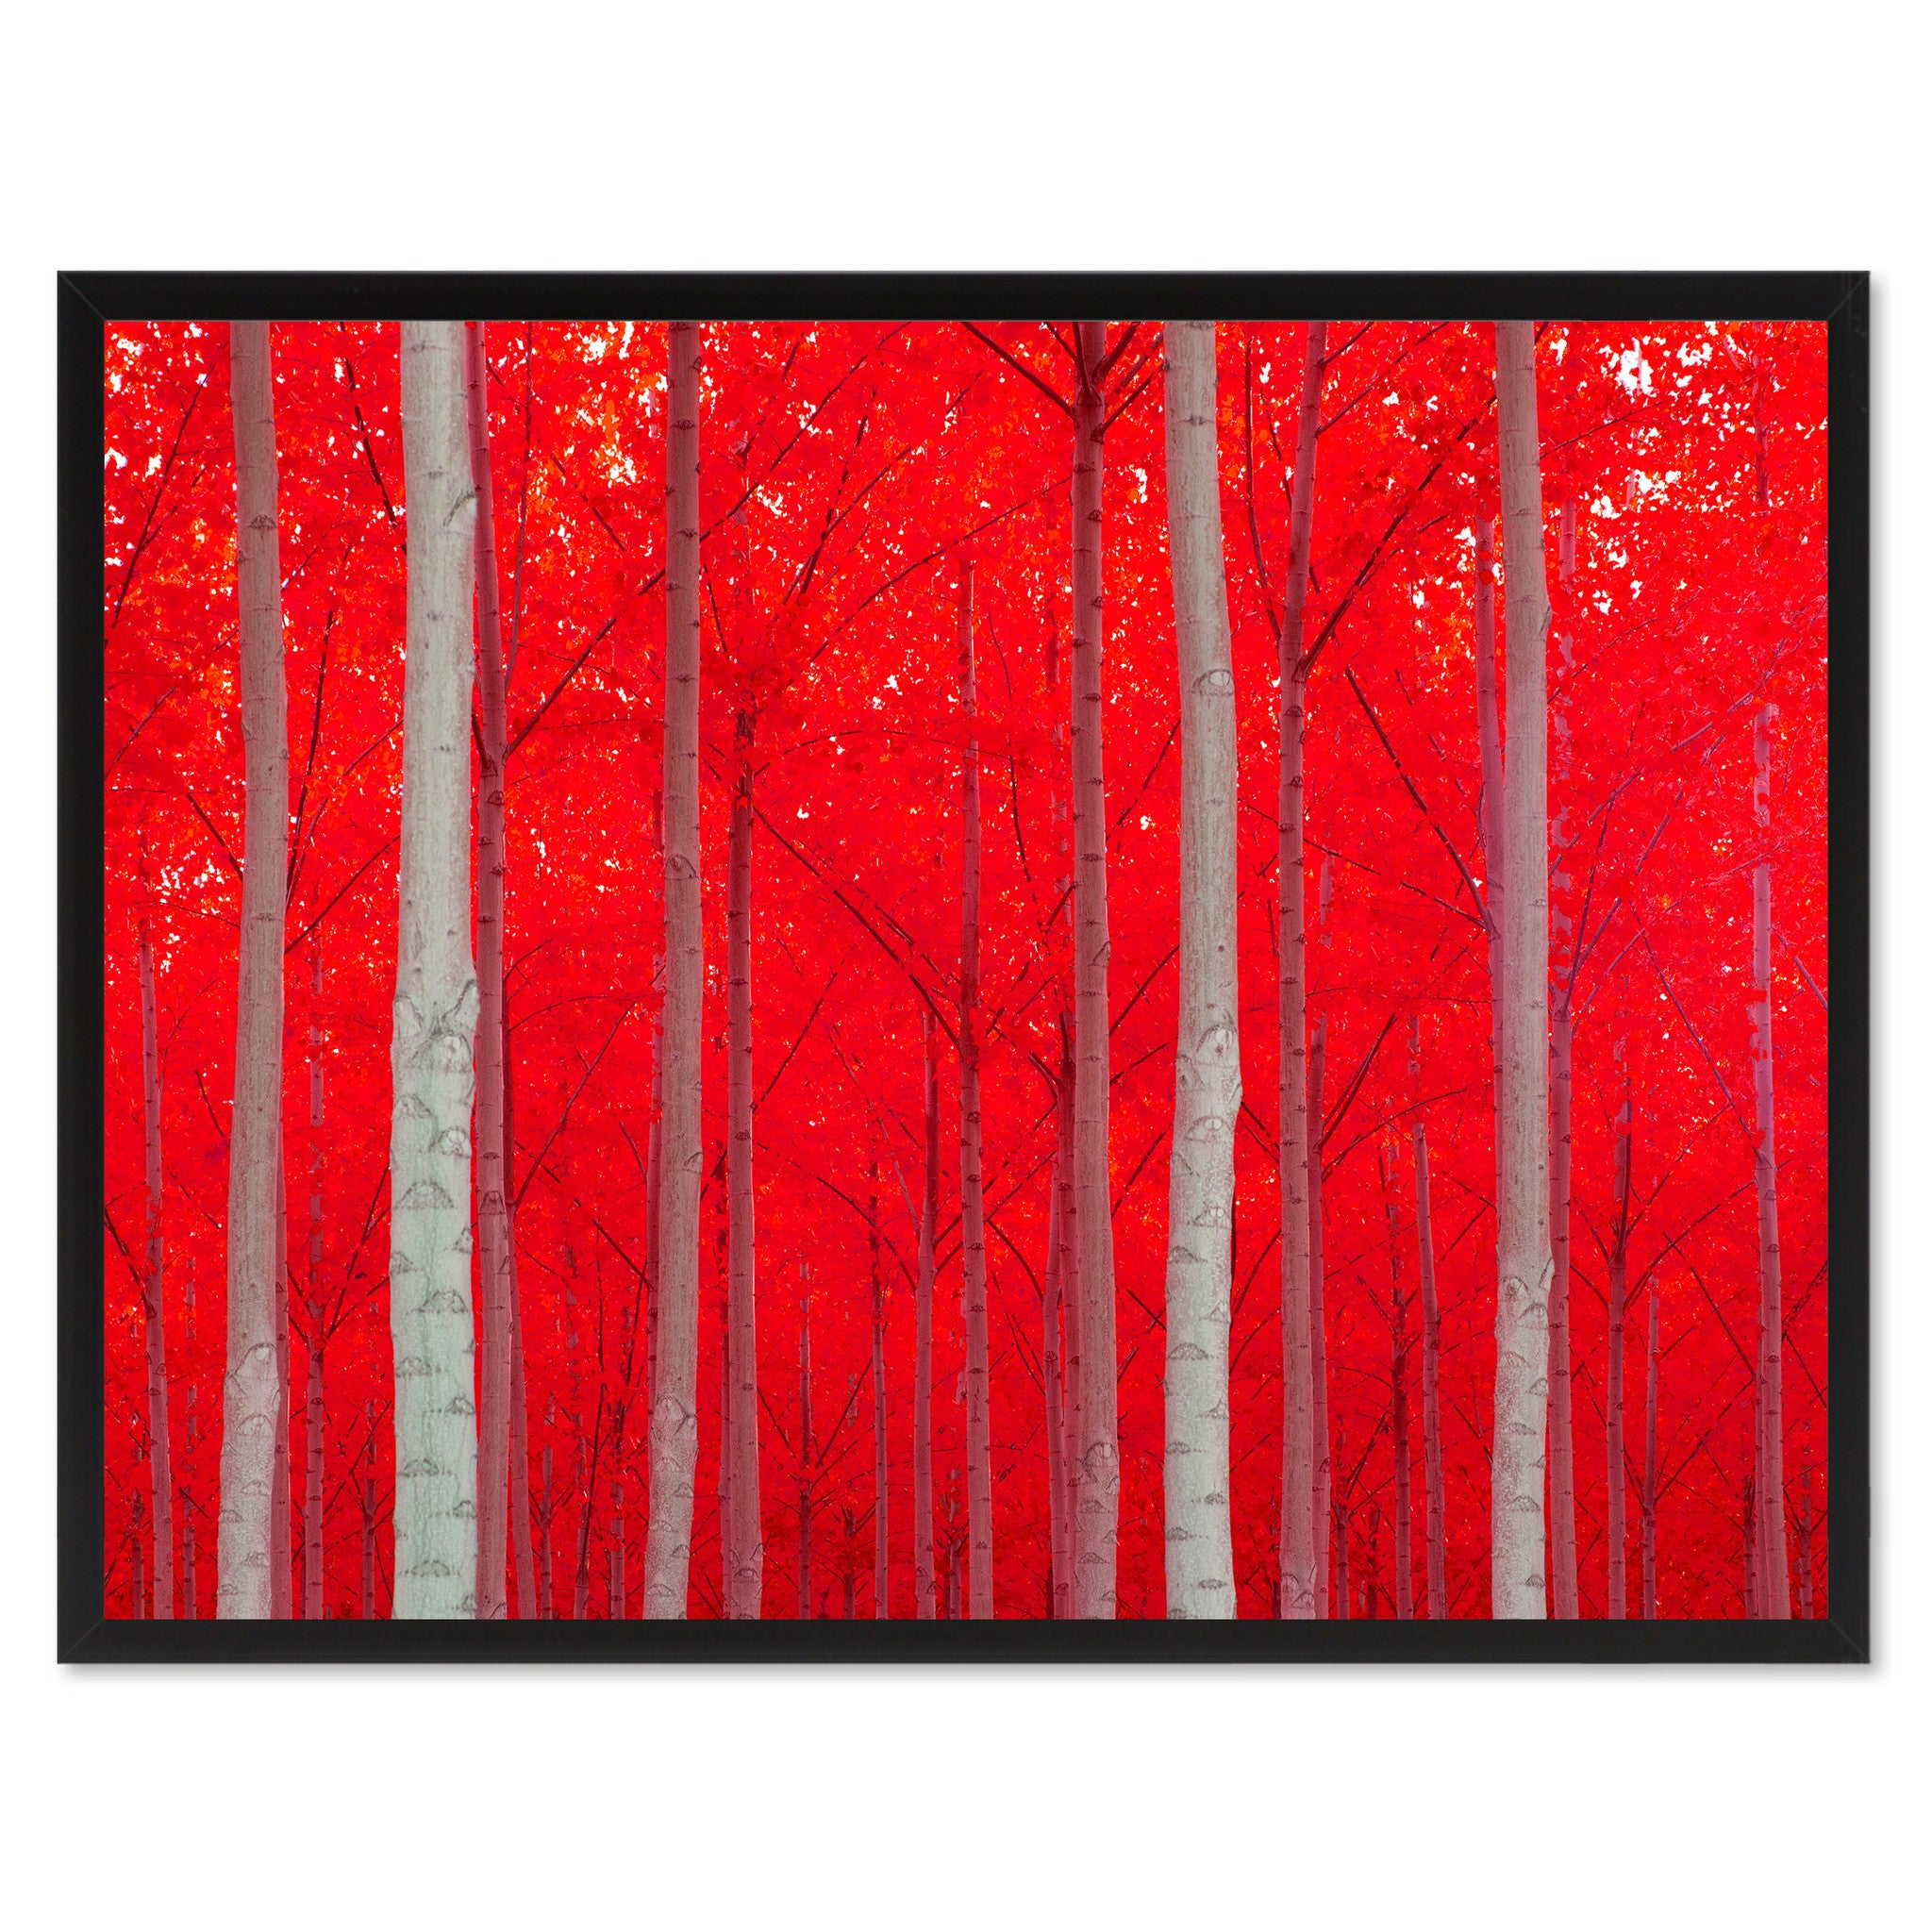 Autumn Tree Red Landscape Photo Canvas Print Pictures Frames Home Décor Wall Art Gifts